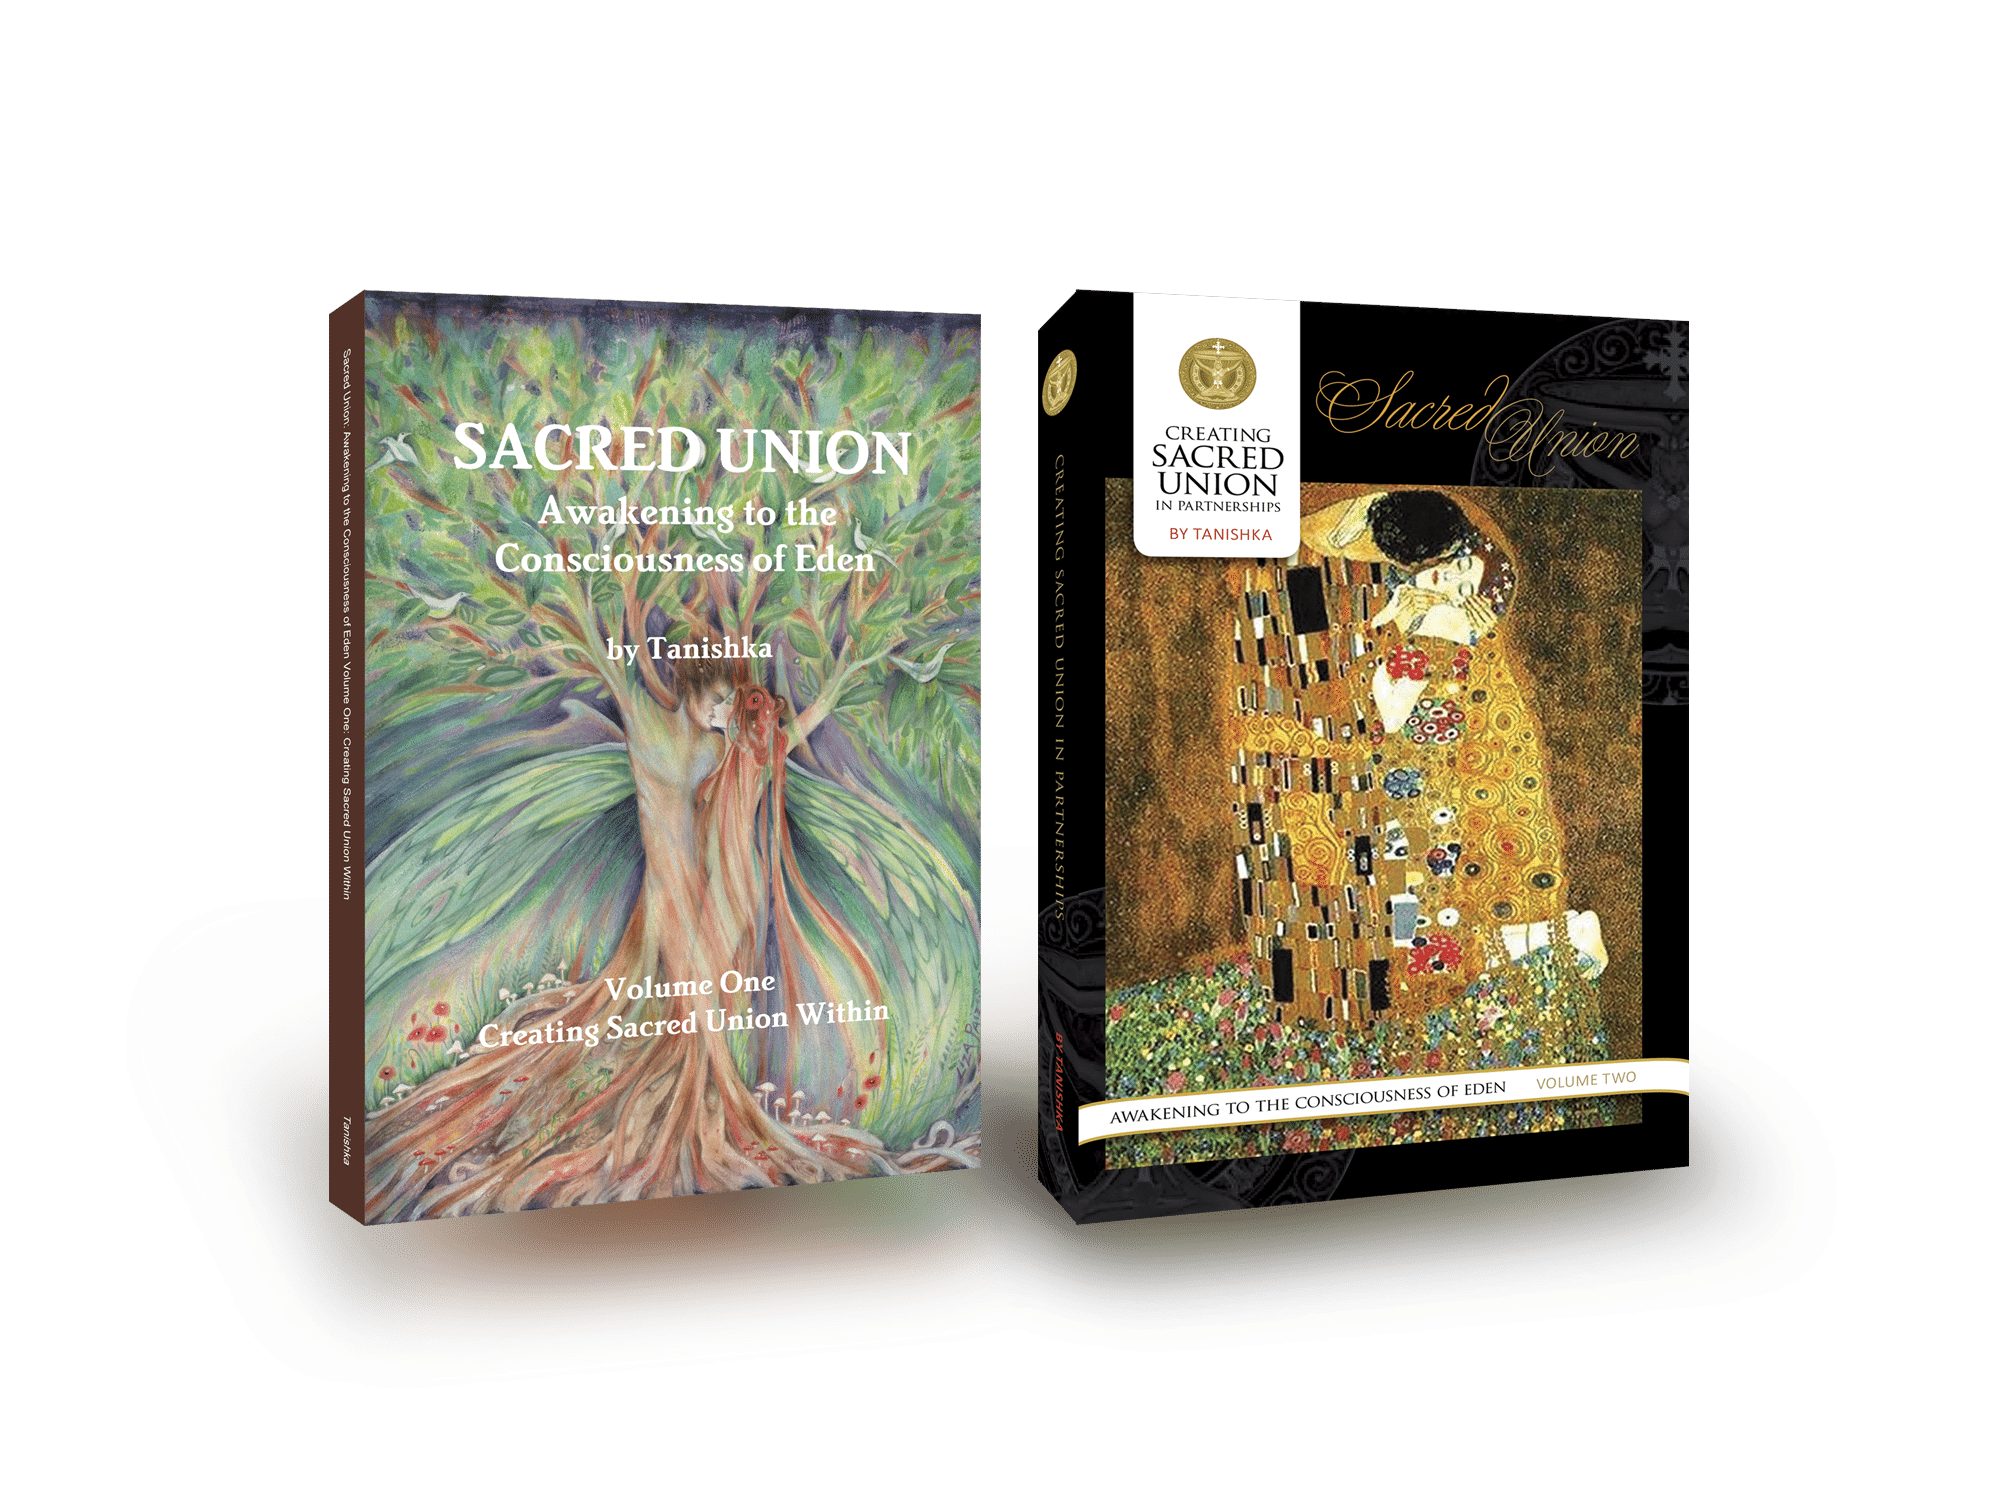 Sacred Union Vol. 1 & Vol. 2 Combo Deal!